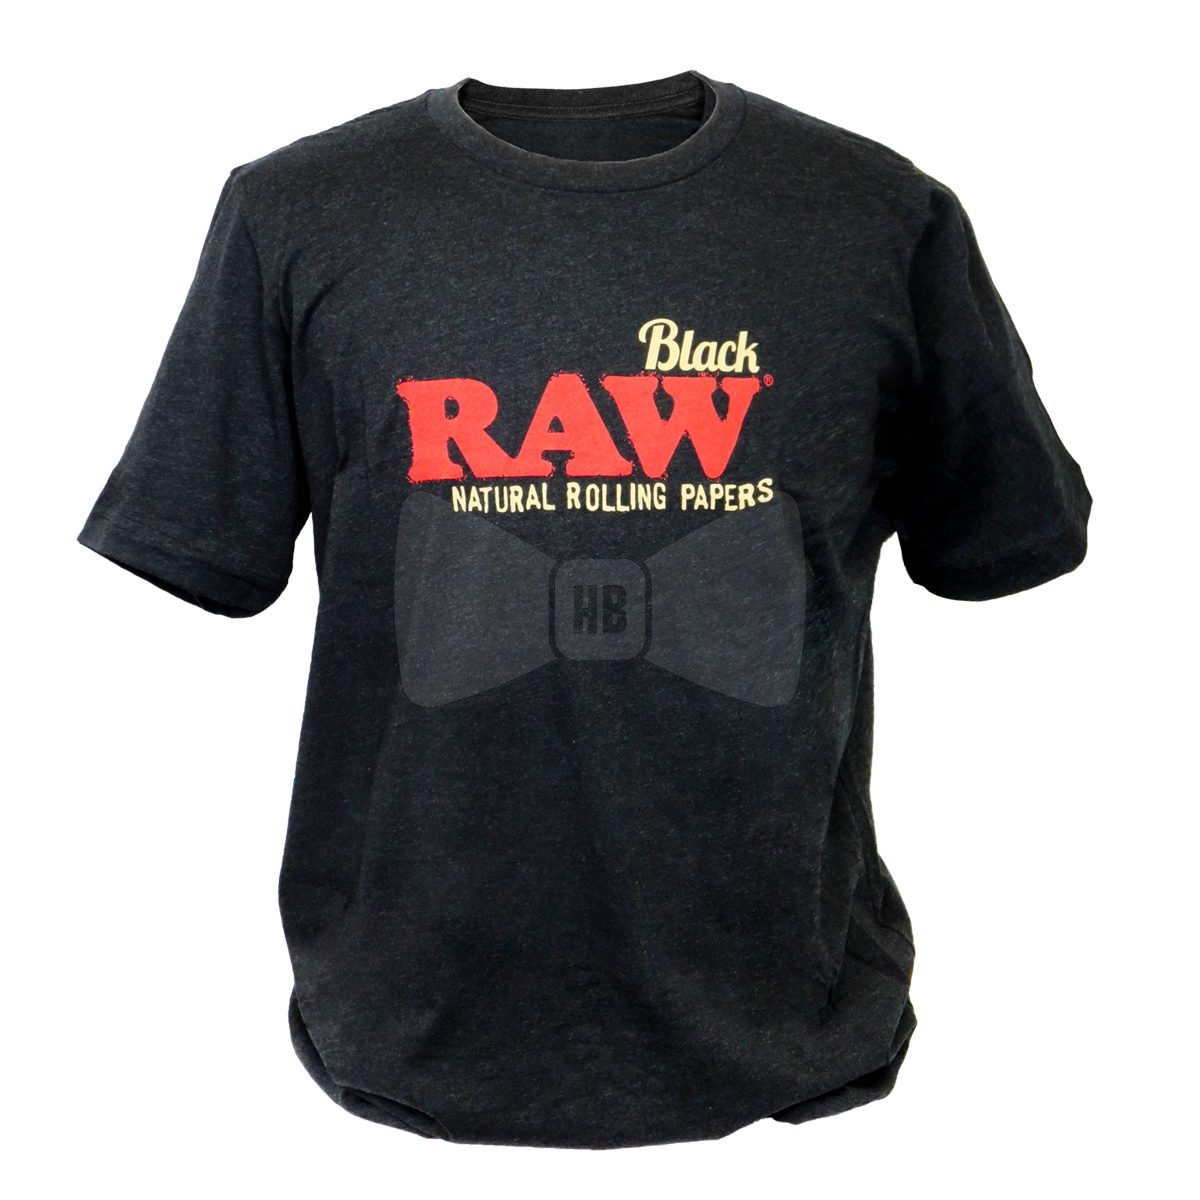 Raw Black Terps T-Shirt Small